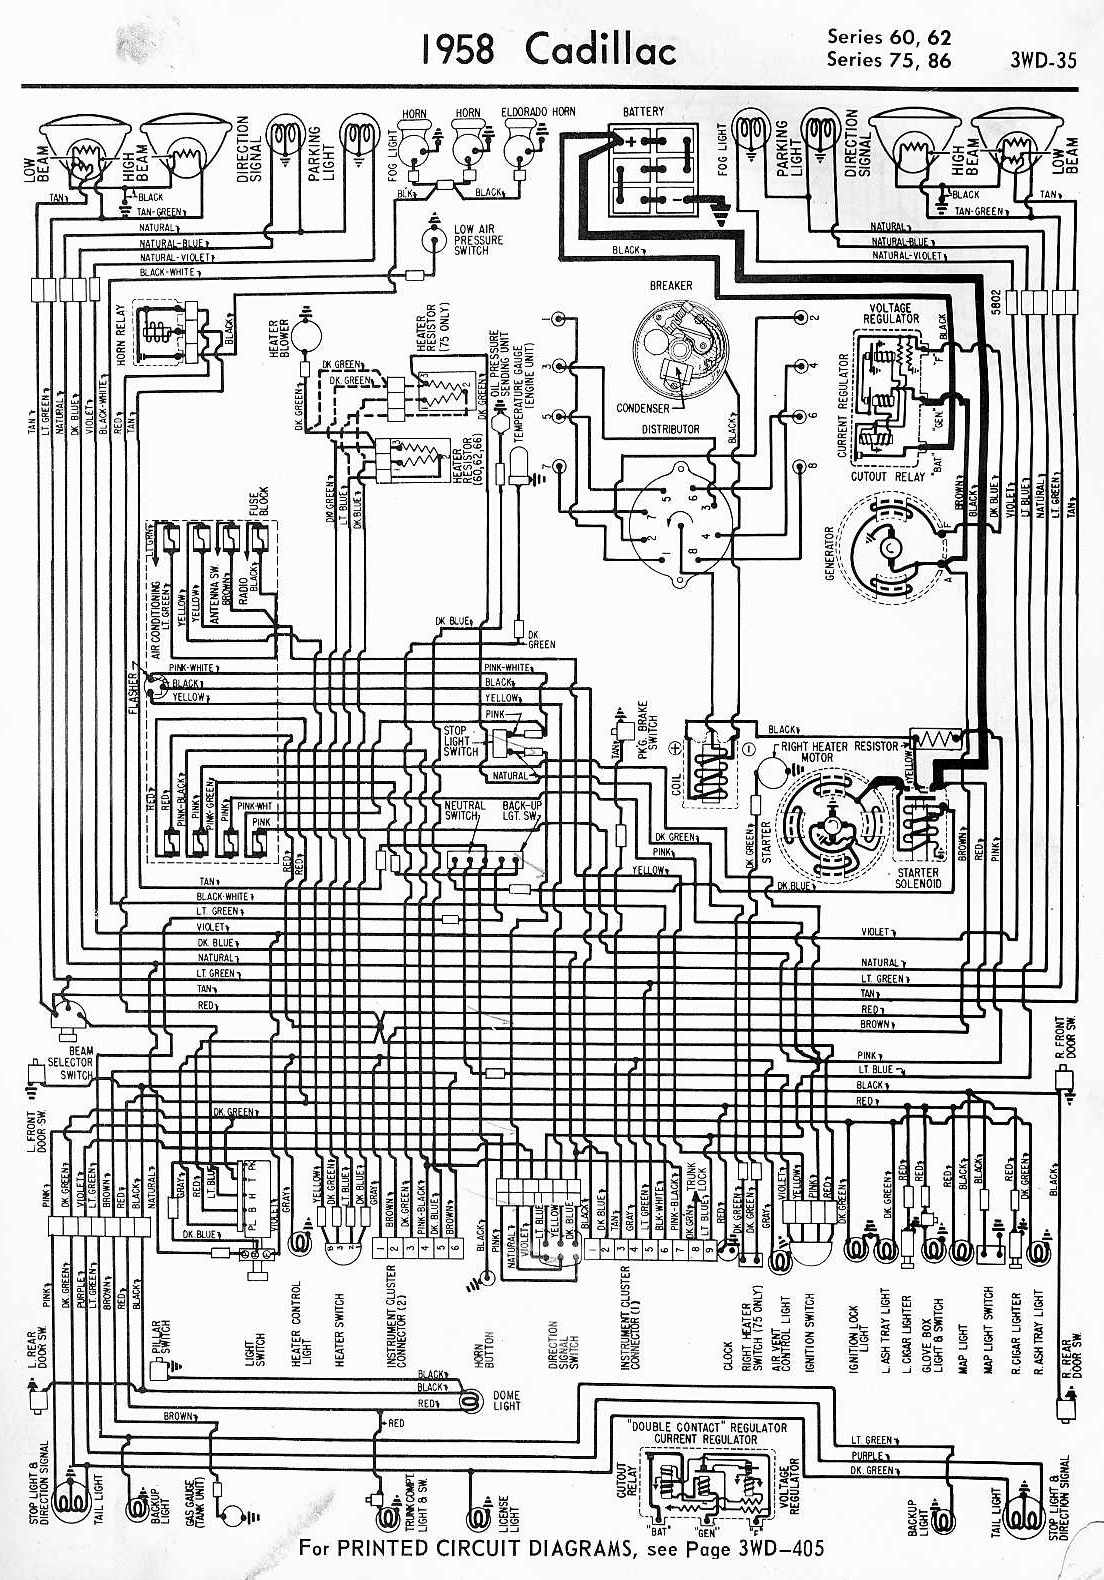 Cadillac Car Manuals Wiring Diagrams Pdf Fault Codes Schematics In Series Diagram Download